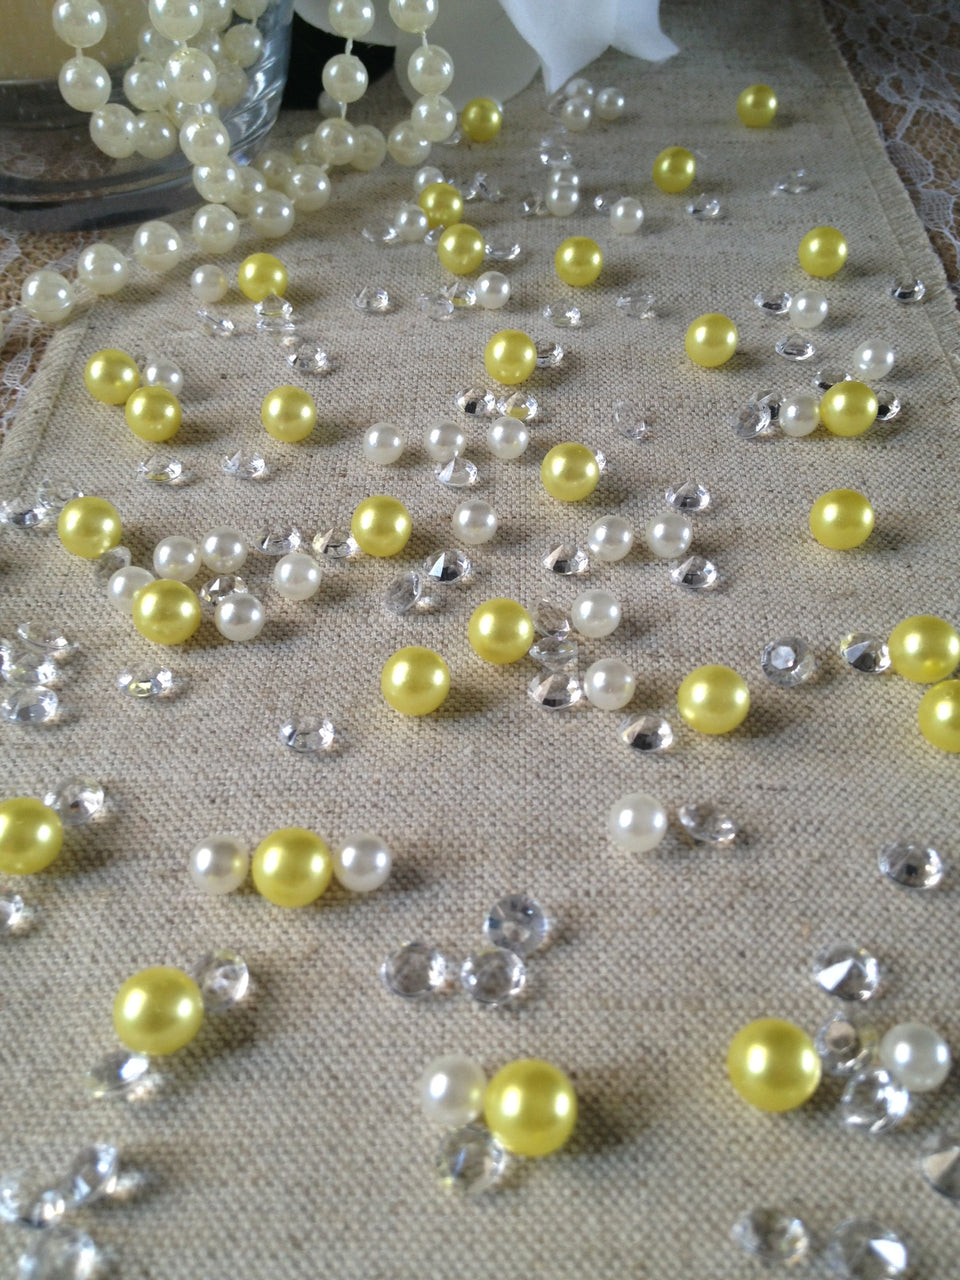 250pc Vintage Yellow Pearls & Diamond Table Scatters For Wedding, Parties, Perfect for wine glass fillers, mason jars.